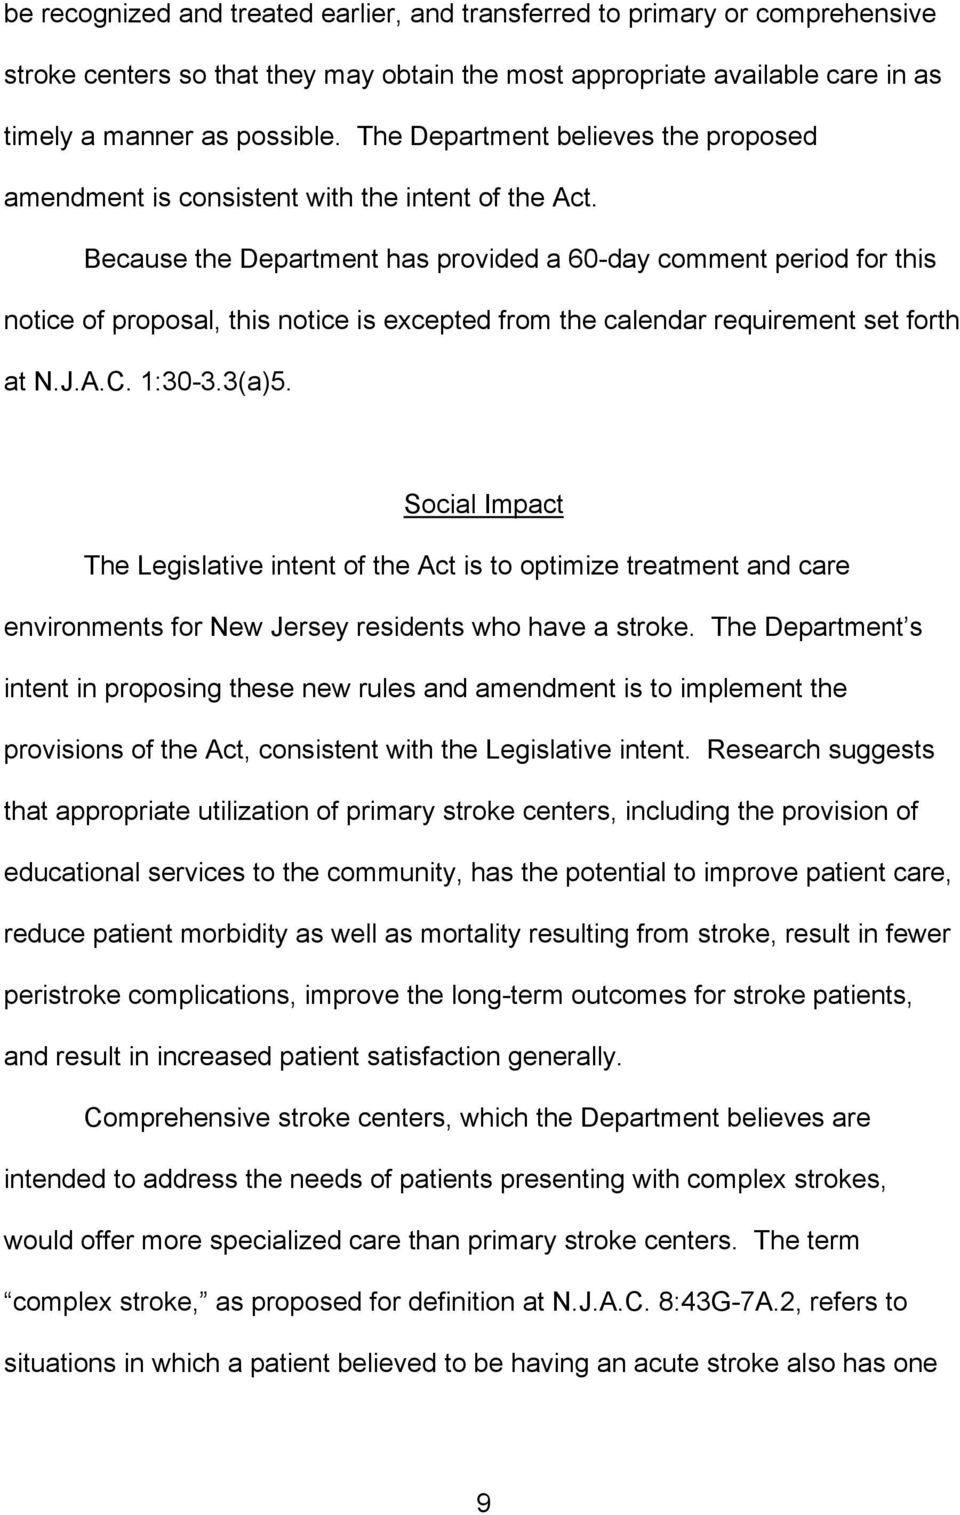 Because the Department has provided a 60-day comment period for this notice of proposal, this notice is excepted from the calendar requirement set forth at N.J.A.C. 1:30-3.3(a)5.